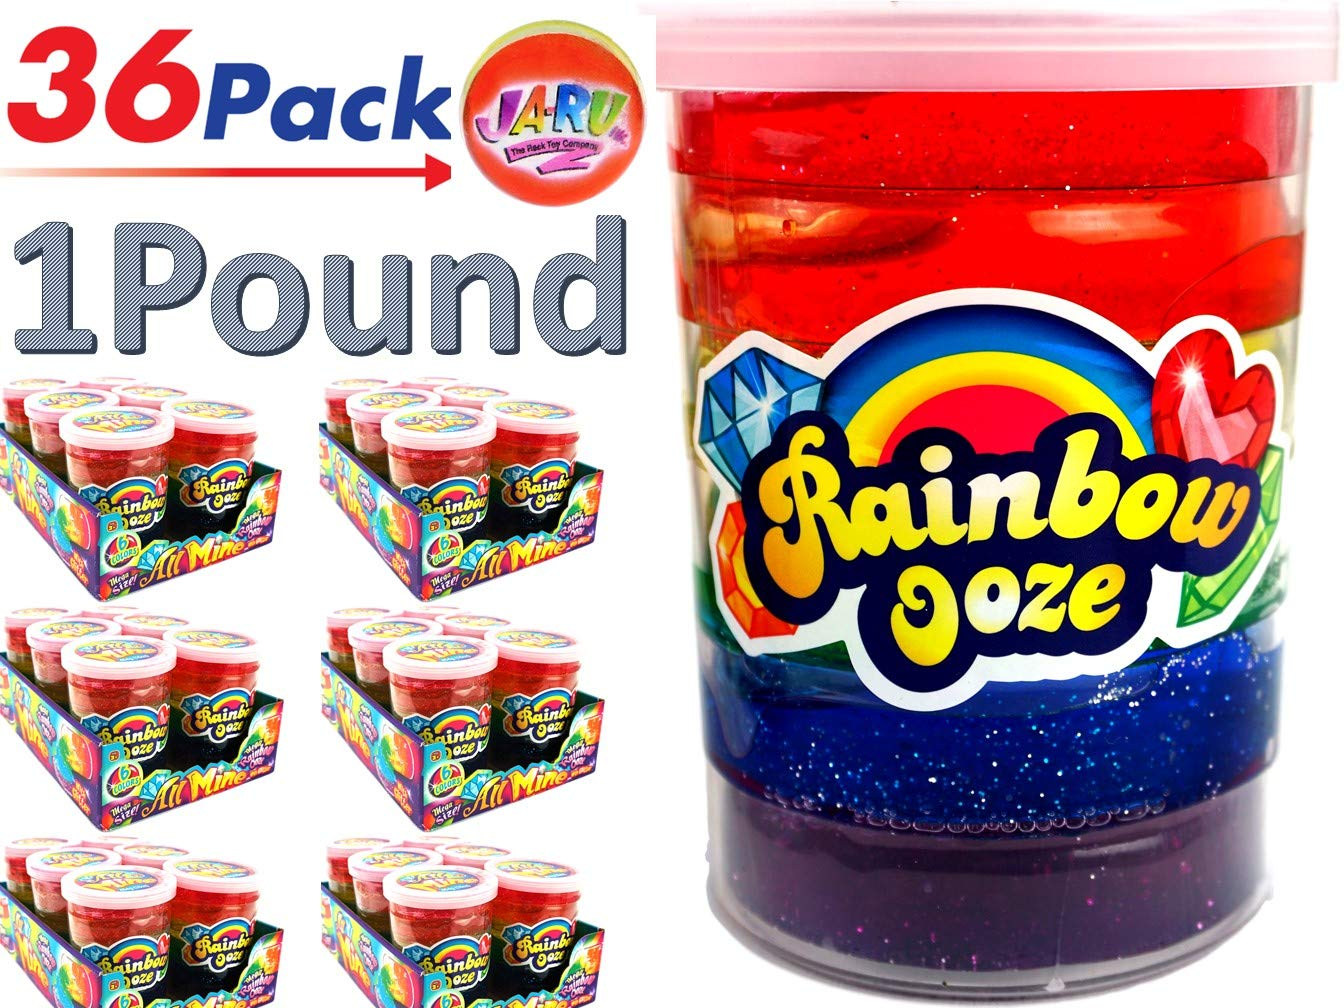 JA-RU Mega Rainbow Slime Kit 1 Pound Neon Glitter Colors (Pack of 36) Unicorn Party Girls Game. Slime Squishy and Stretchy. Arts and Crafts for Girls Party Favor Toy Supplies | Item #4636-36p